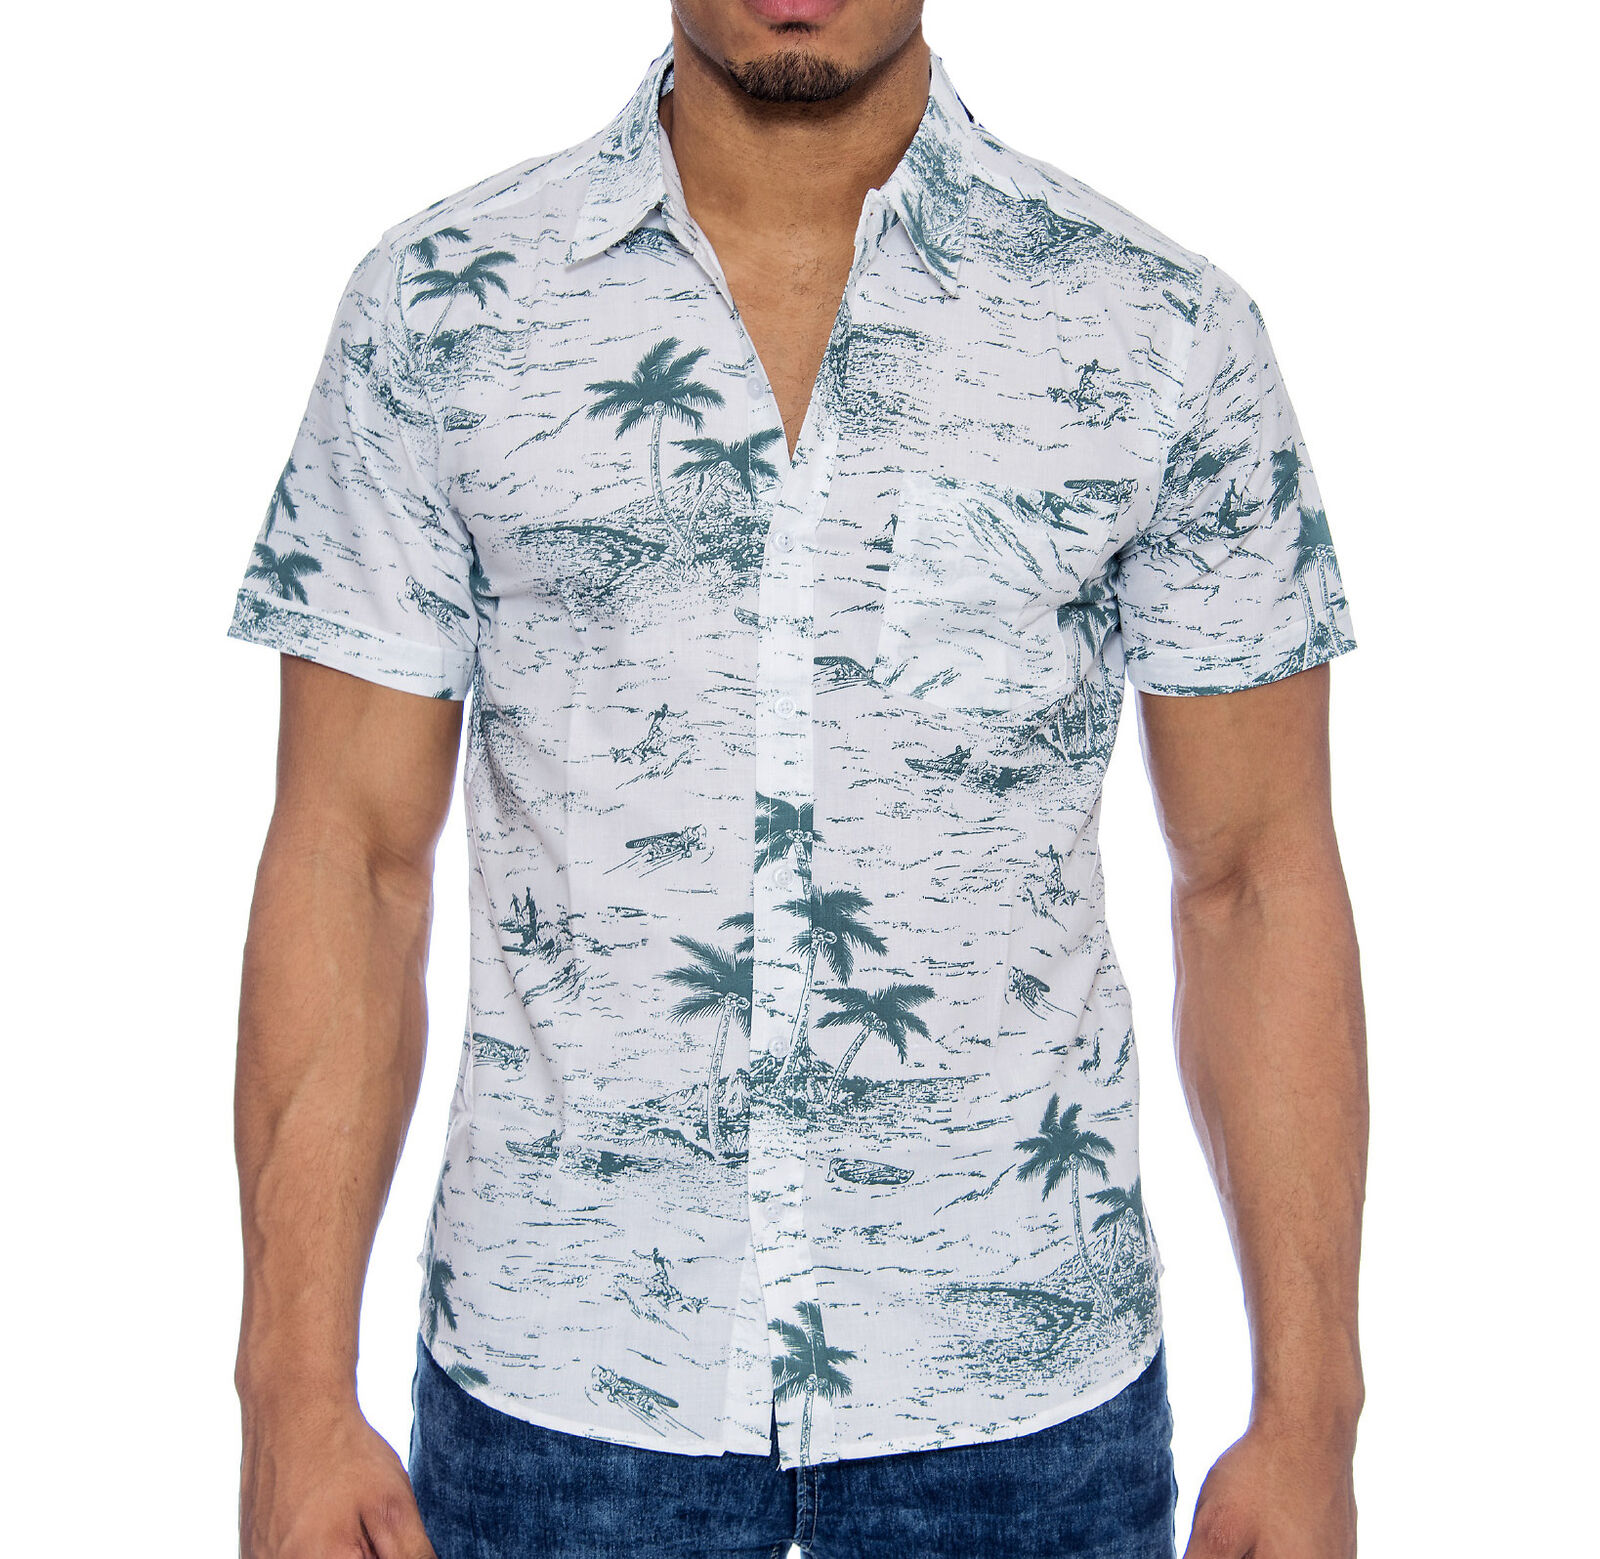 MEN/'S MOSSIMO BUTTON DOWN SHIRT MED  SHORT SLEEVE SLIM FIT TROPIC PALM TREE NWOT